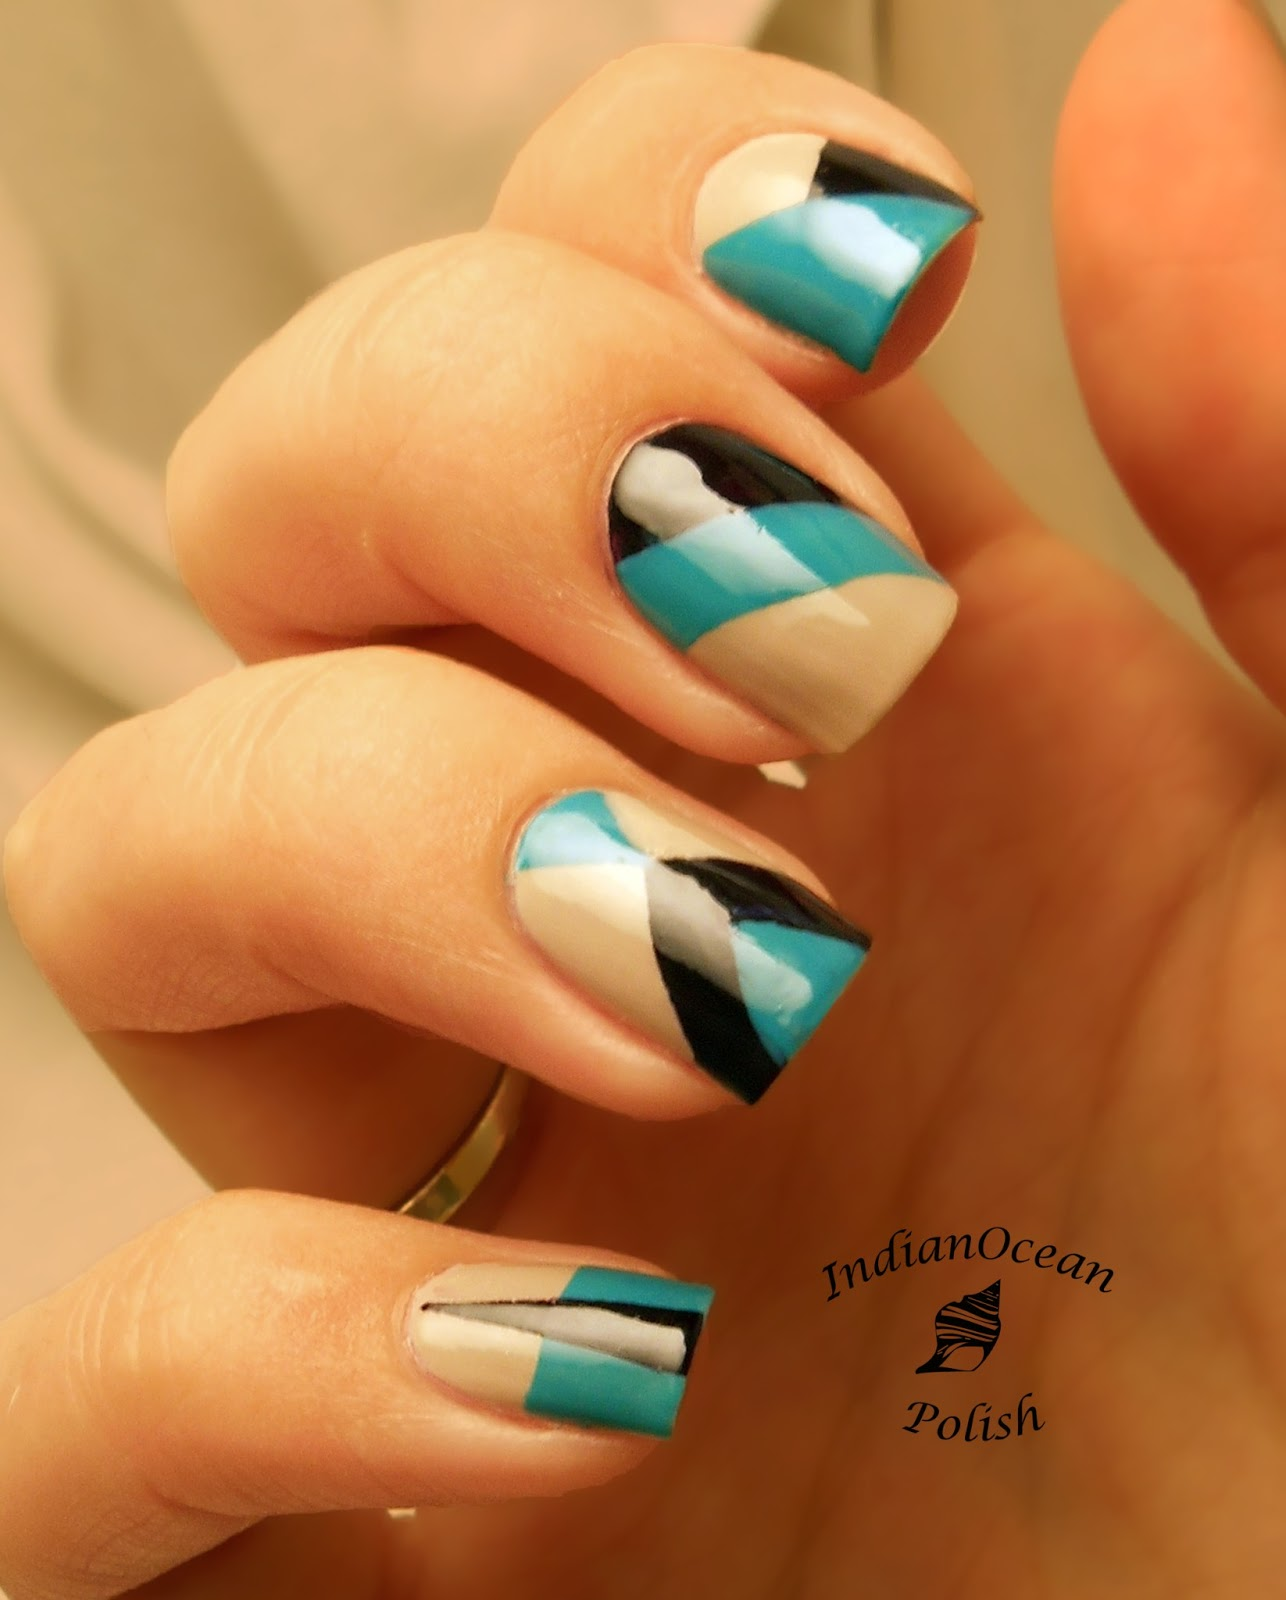 Nail Art With Tape: Indian Ocean Polish: July 2013